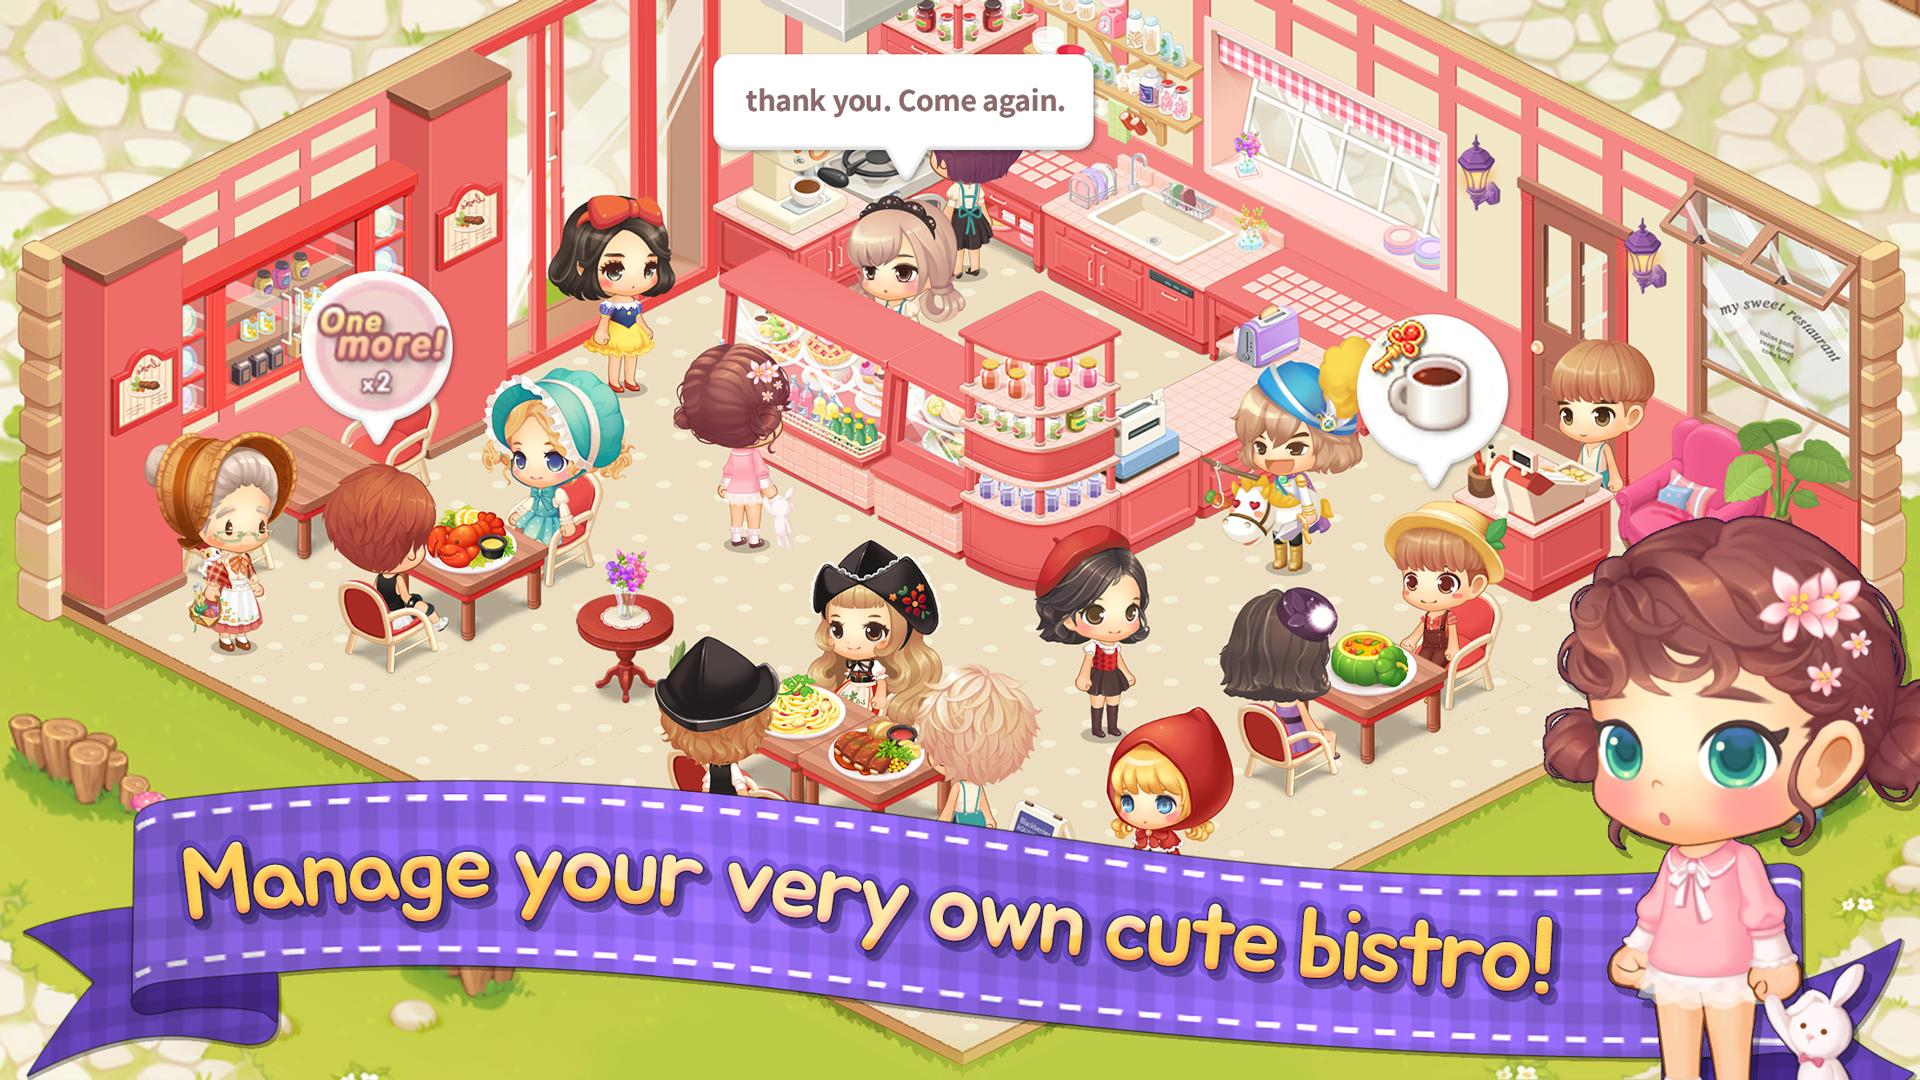 My Secret Bistro Play cooking game with friends 1.6.4 Screenshot 14